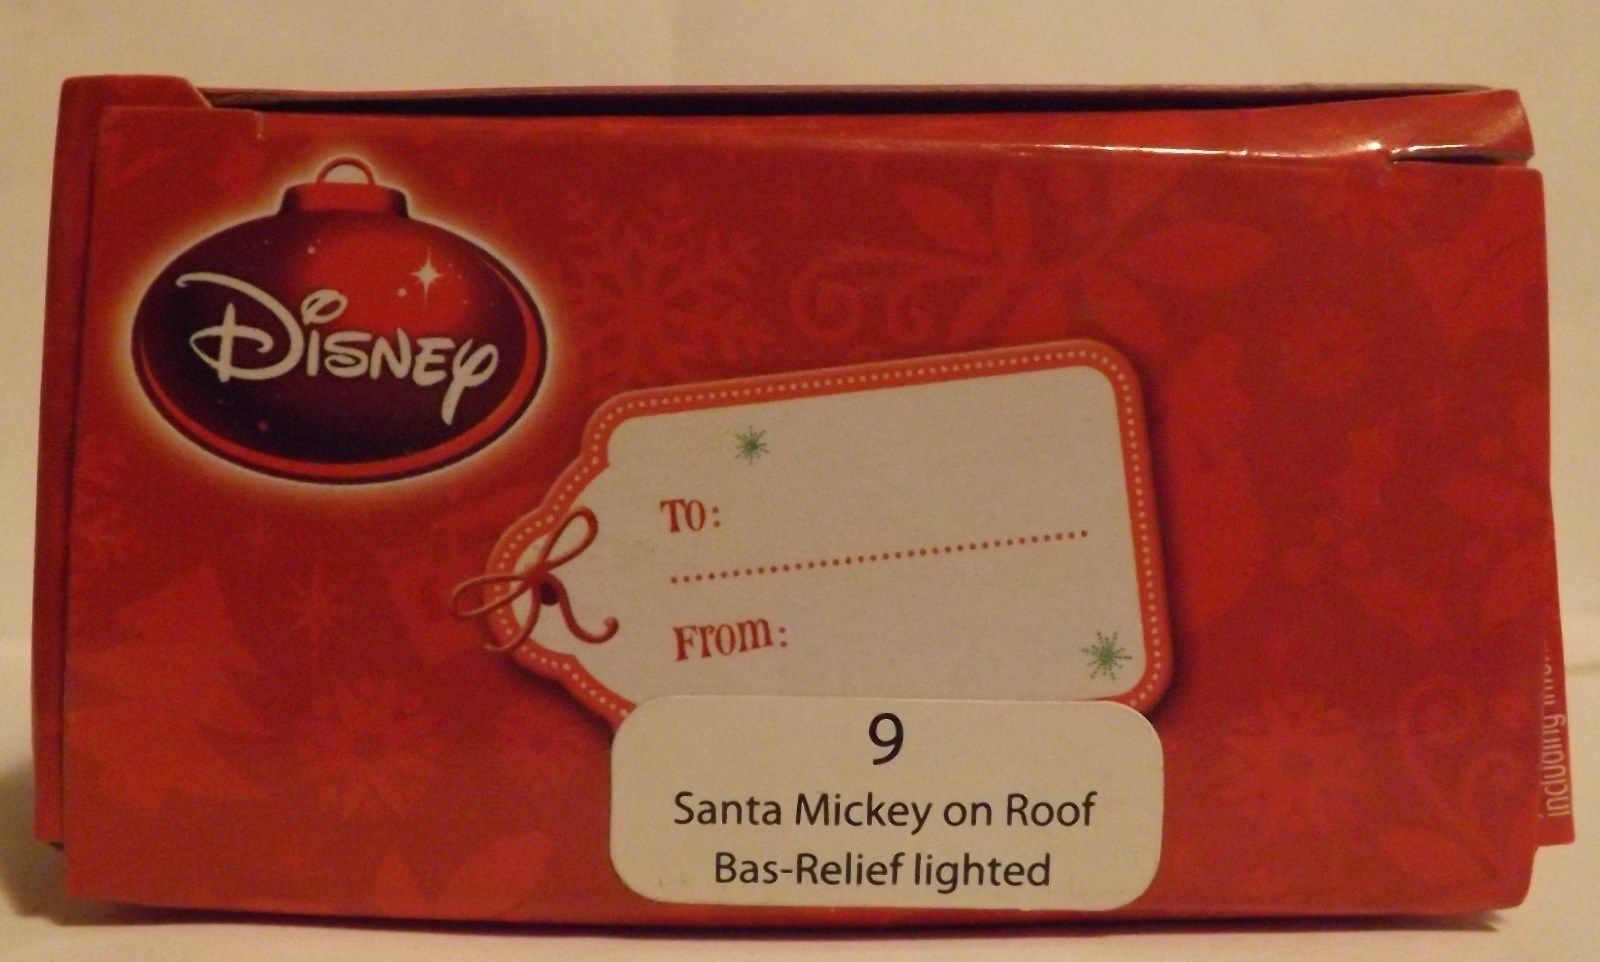 """Disney 3"""" Santa Mickey on Roof Bas-Relief Lighted Ornament image 2"""